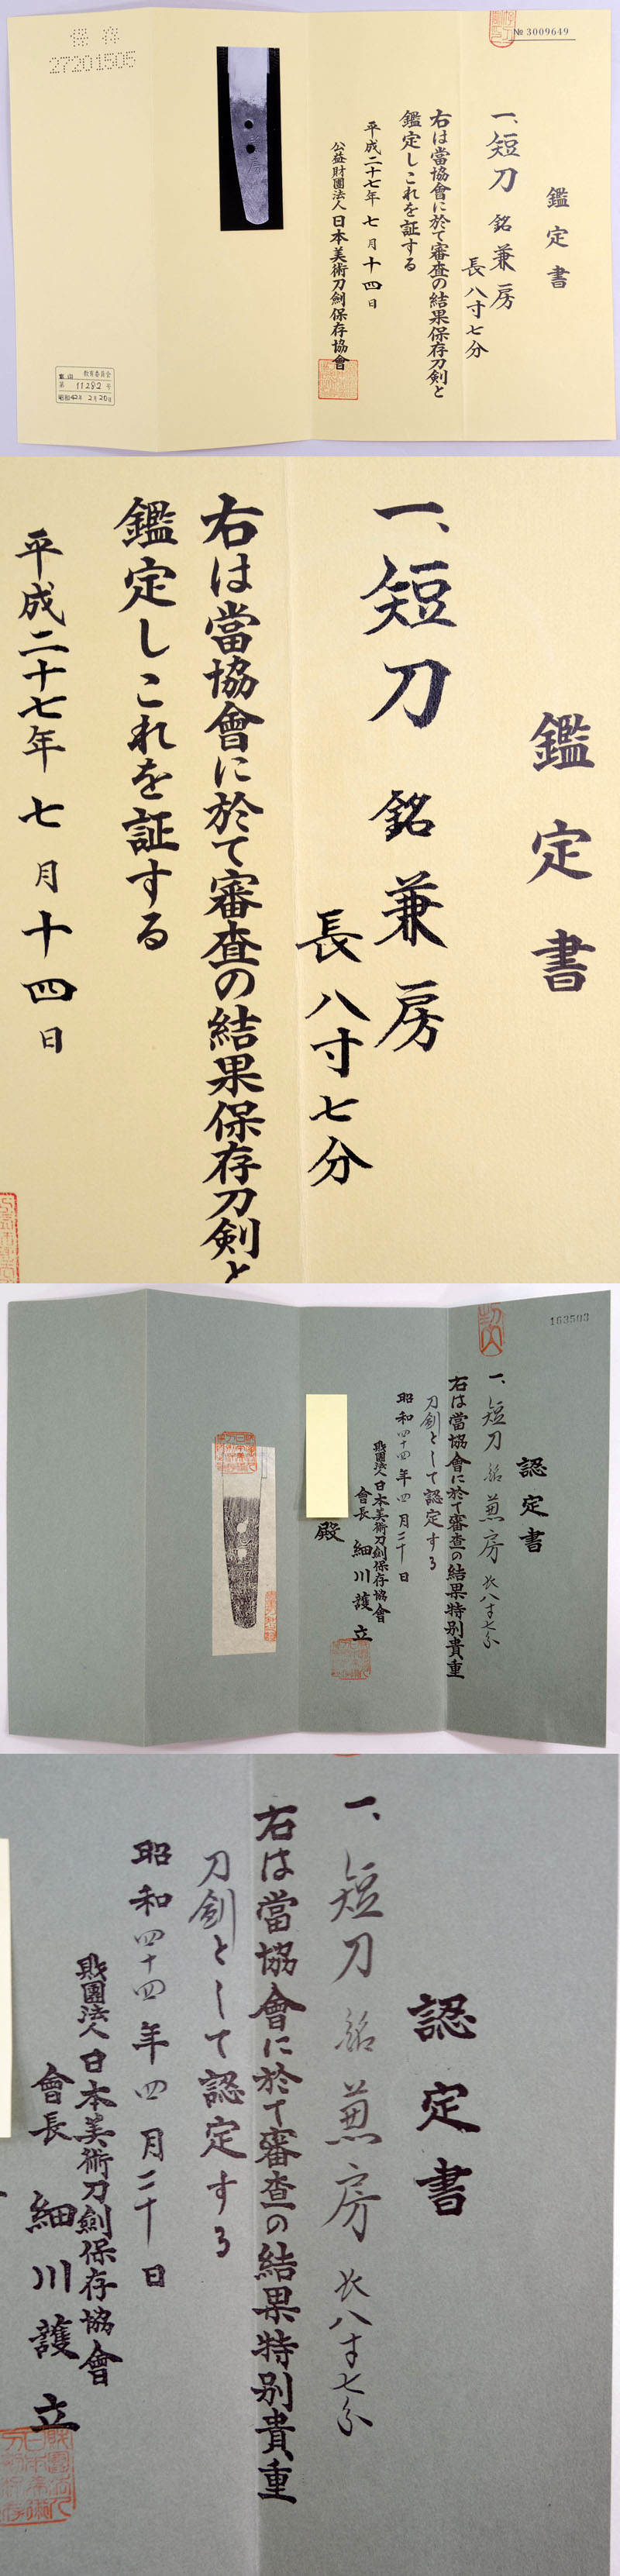 兼房 Picture of Certificate